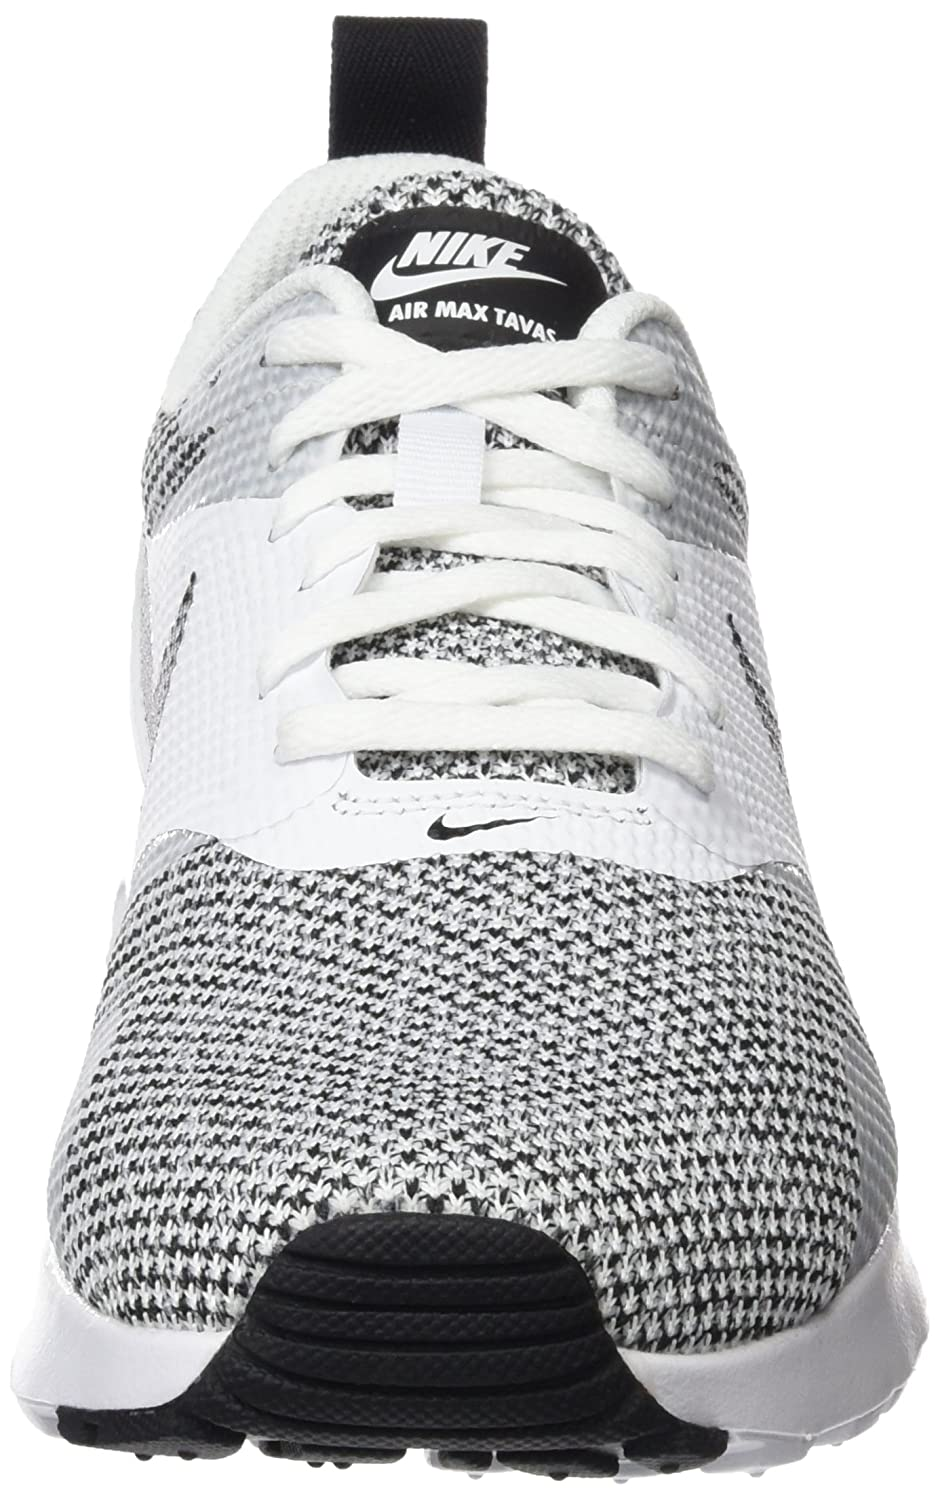 schuh air max tavas premium white black pure platinum